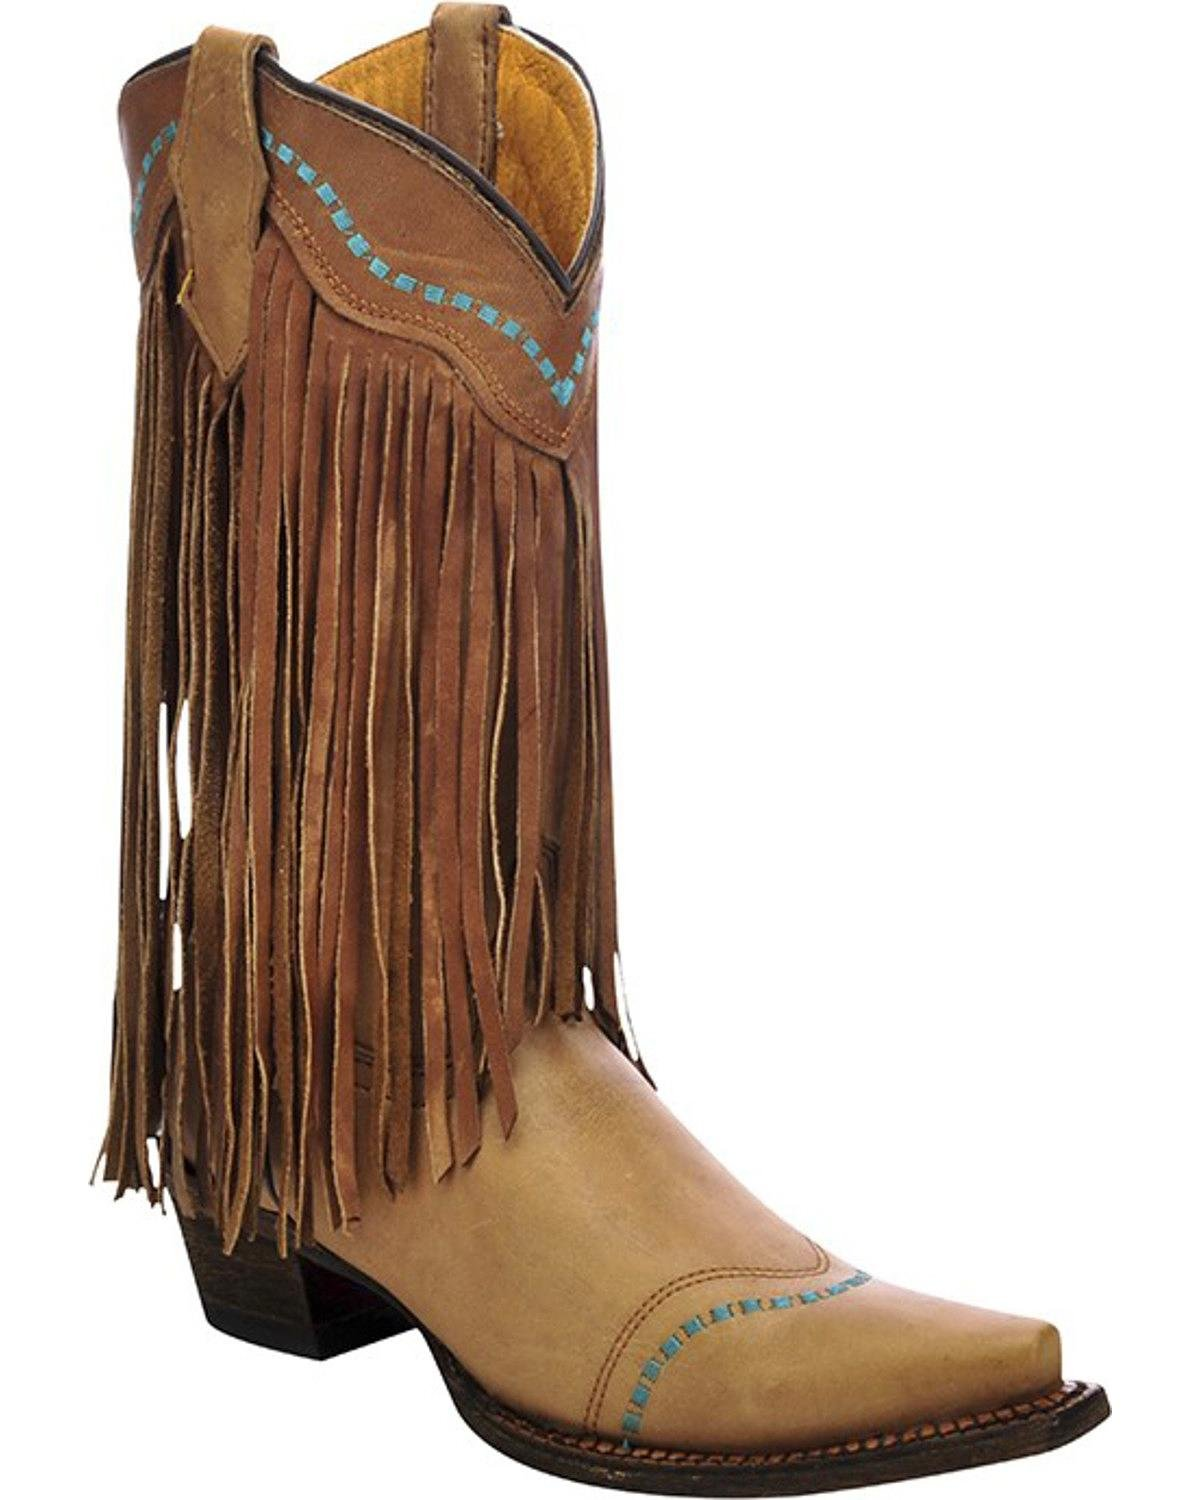 Corral Girls' Cowhide Fringe Cowgirl Boot Snip Toe Taupe 3.5 by CORRAL